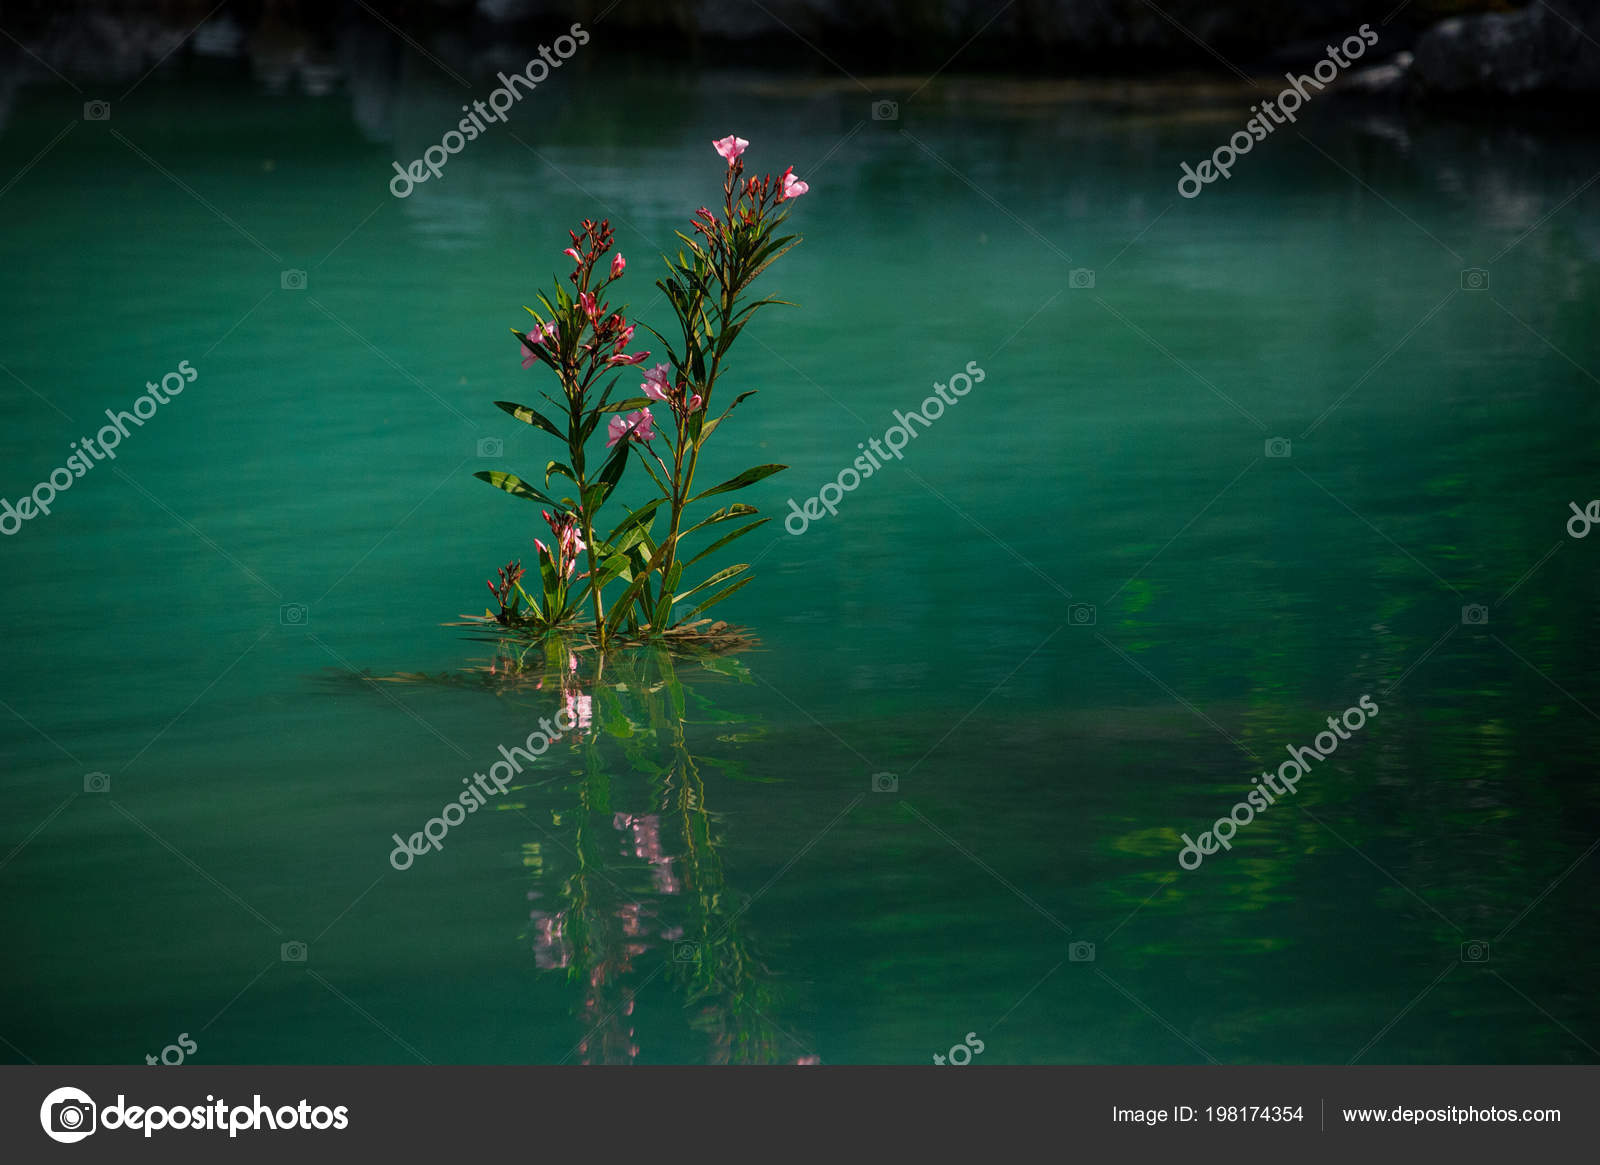 Beautiful water flowers in a beautiful pond stock photo fesenko amazingly beautiful water flowers in the wonderful pond with the clear blue water on the blurred background photo by fesenko izmirmasajfo